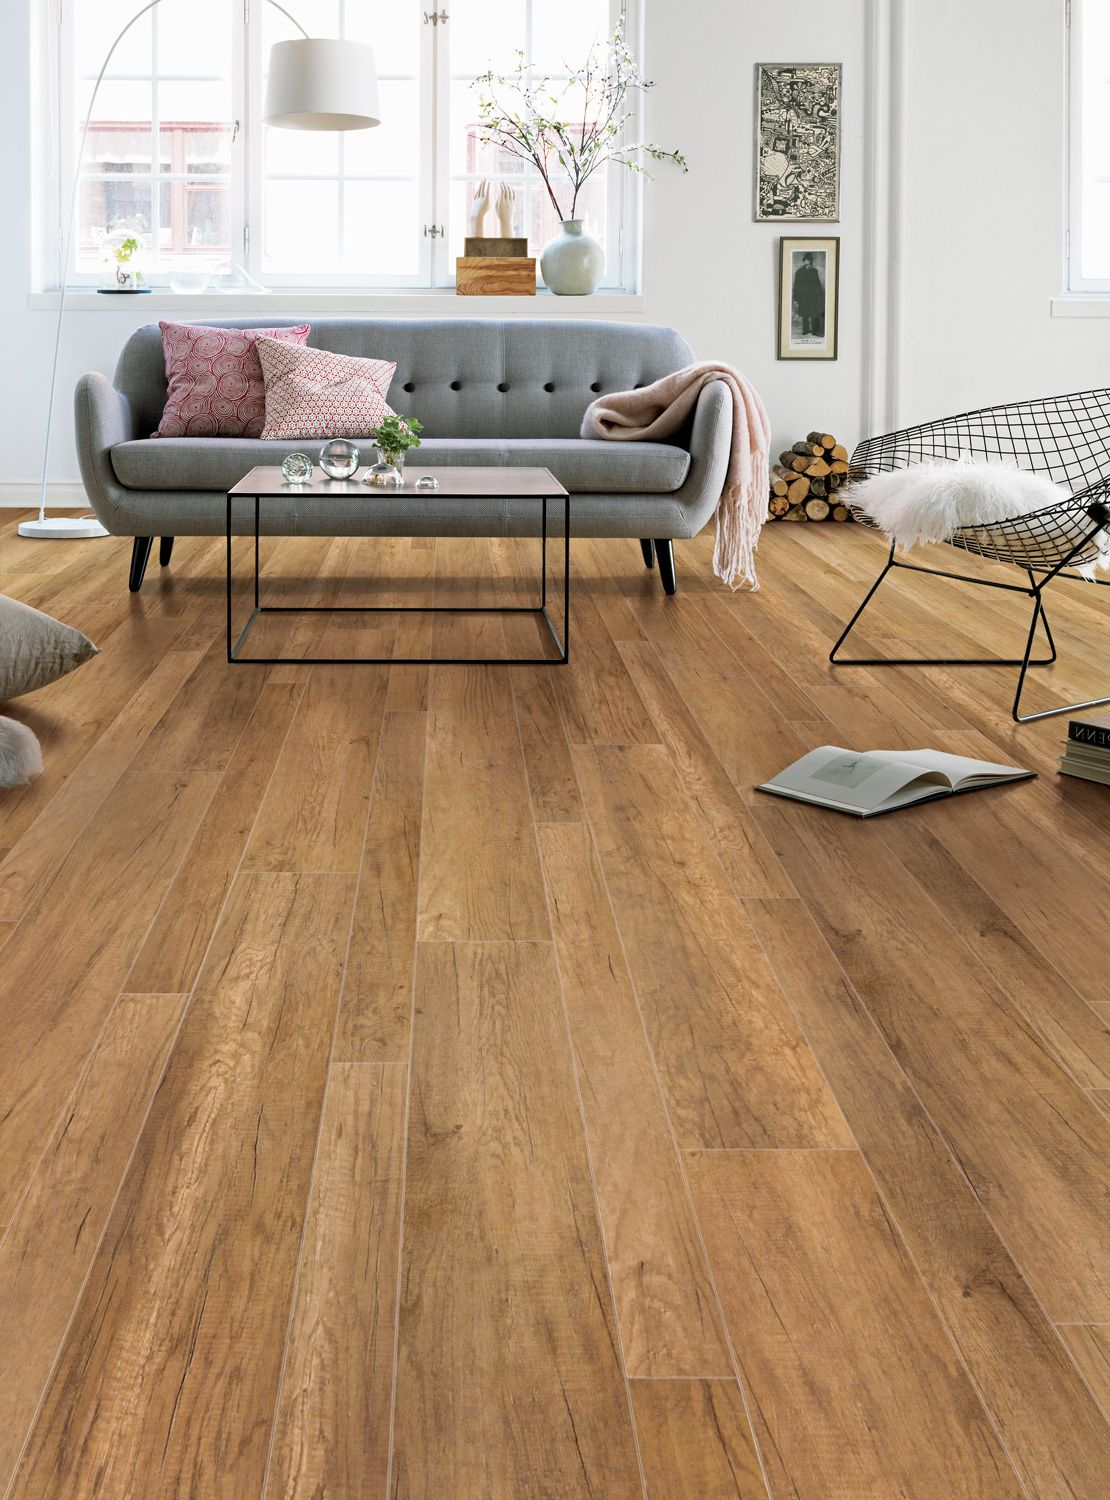 Tarkett Laminate Flooring tarkett laminate journeys aberdeen oak gunstock Wood Look Laminate Floor Ivc Us Balterio Armstrong Tarkett Hardwood Bamboo Cork Laminate Vinyl